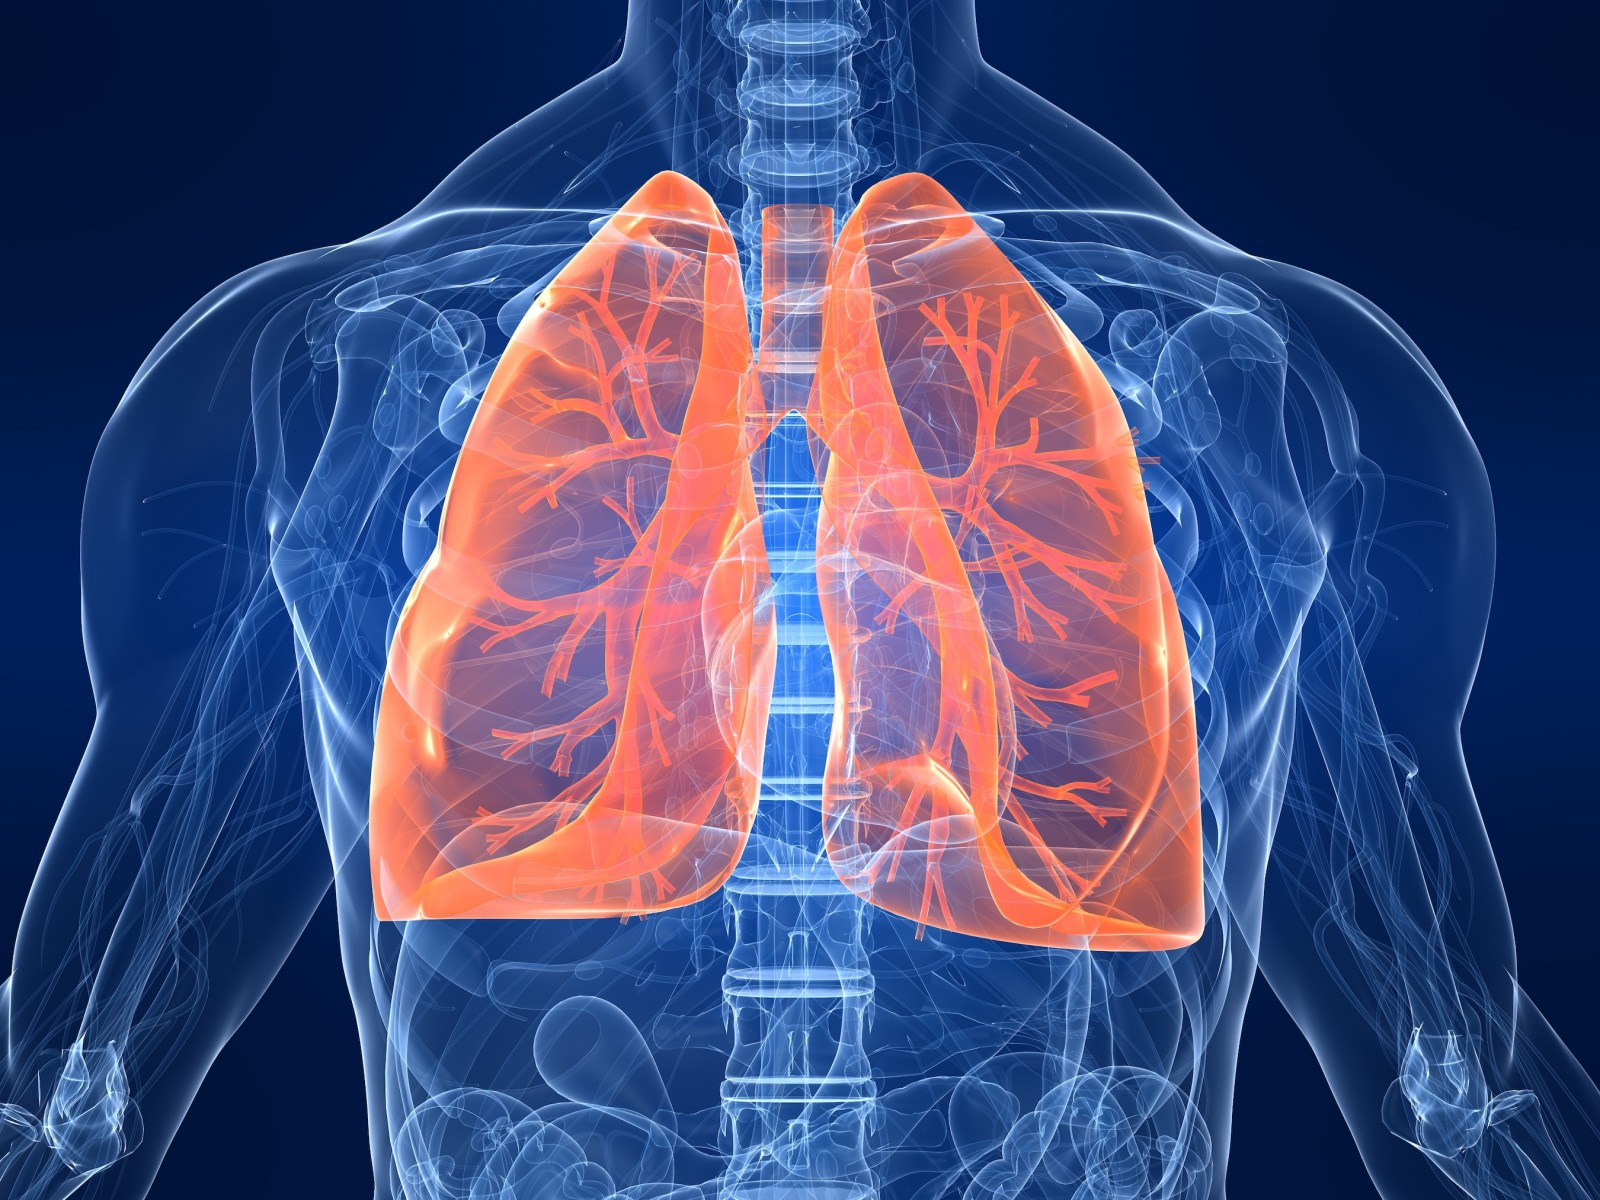 Lung tissue damaged by inflammation is deadly because it allows fluid and cells to build up in airways, preventing the lungs from absorbing oxygen.